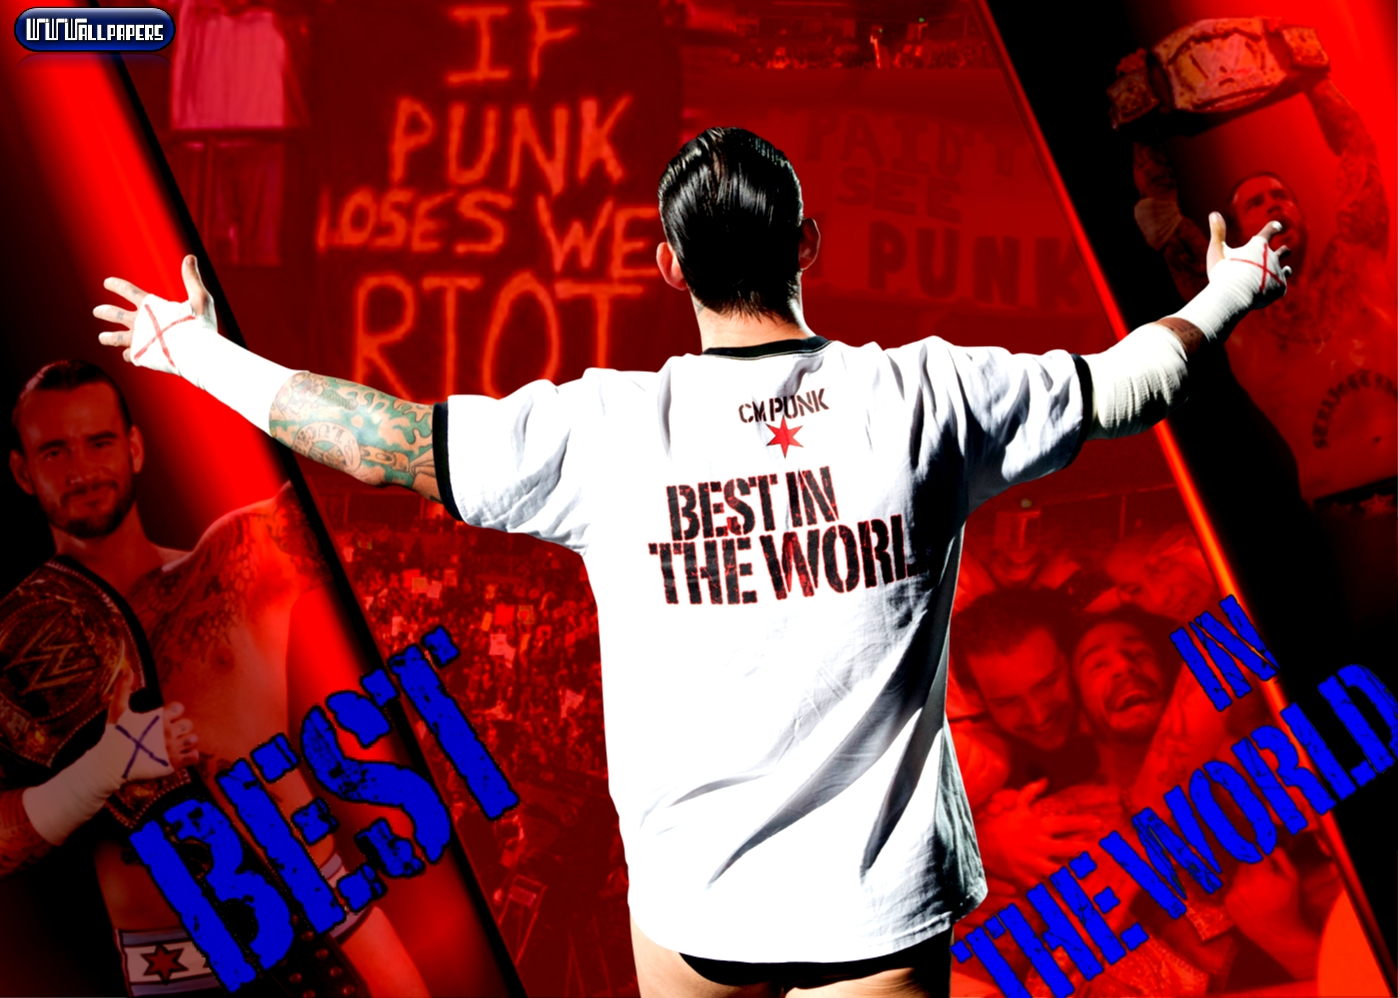 http://3.bp.blogspot.com/--BSfEXWuSgU/TtfezuSvmaI/AAAAAAAABdA/S2x1Tu47zIk/s1600/Cm+punk+wwe+wallpaper+best+world+champion+voice.jpg